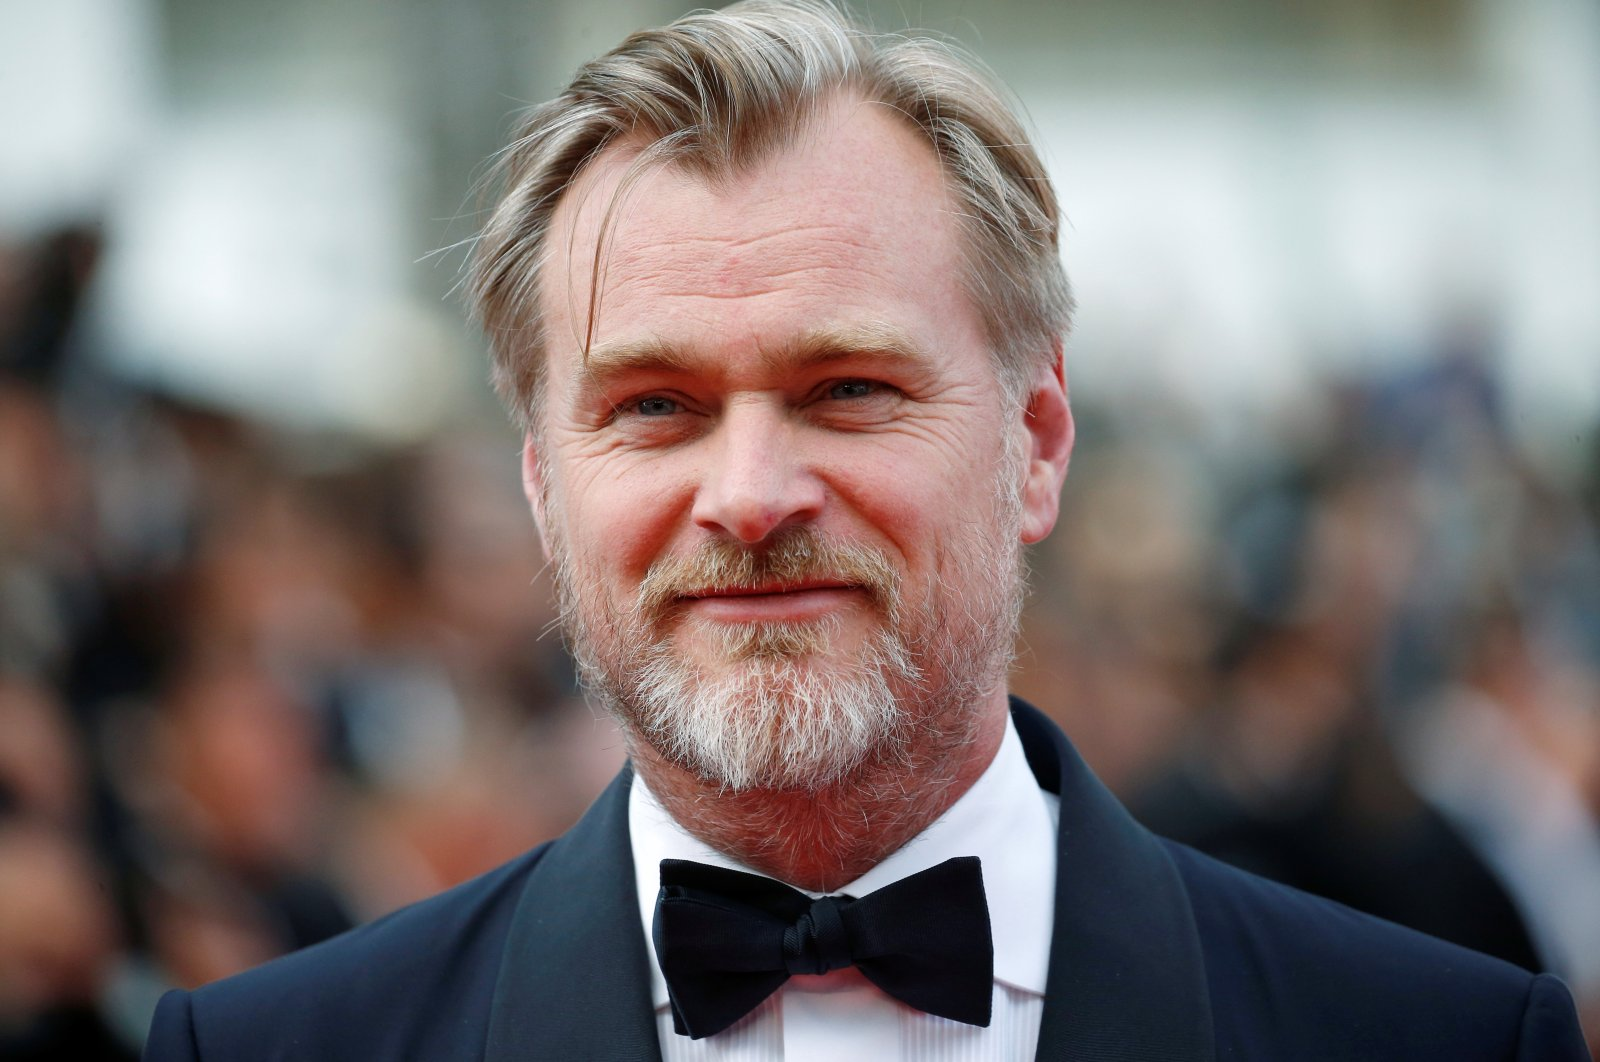 Director Christopher Nolan poses at the 71st Cannes Film Festival, Cannes, France, May 13, 2018. (REUTERS Photo)